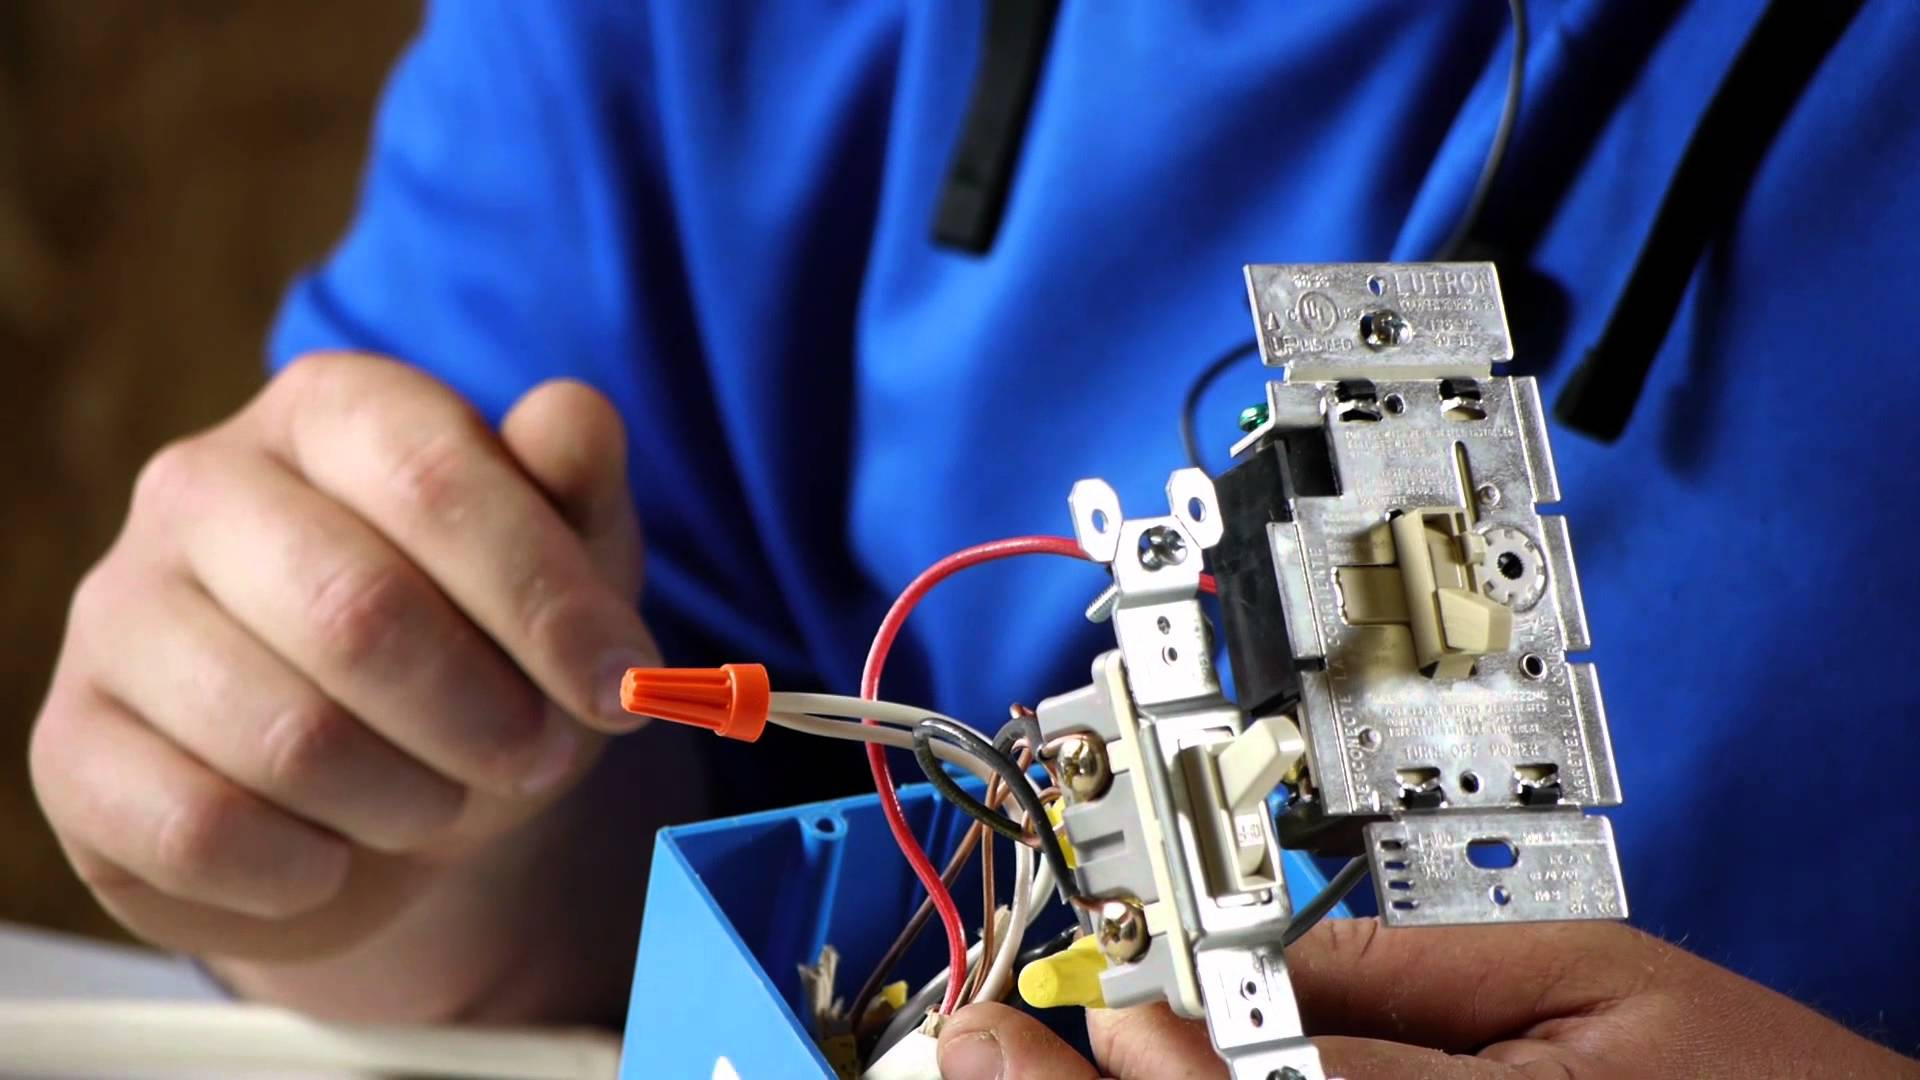 how to wire a light switch smartthingsThe Thermostat Electric Box Has The Main Load On A Switch Red Wire #1